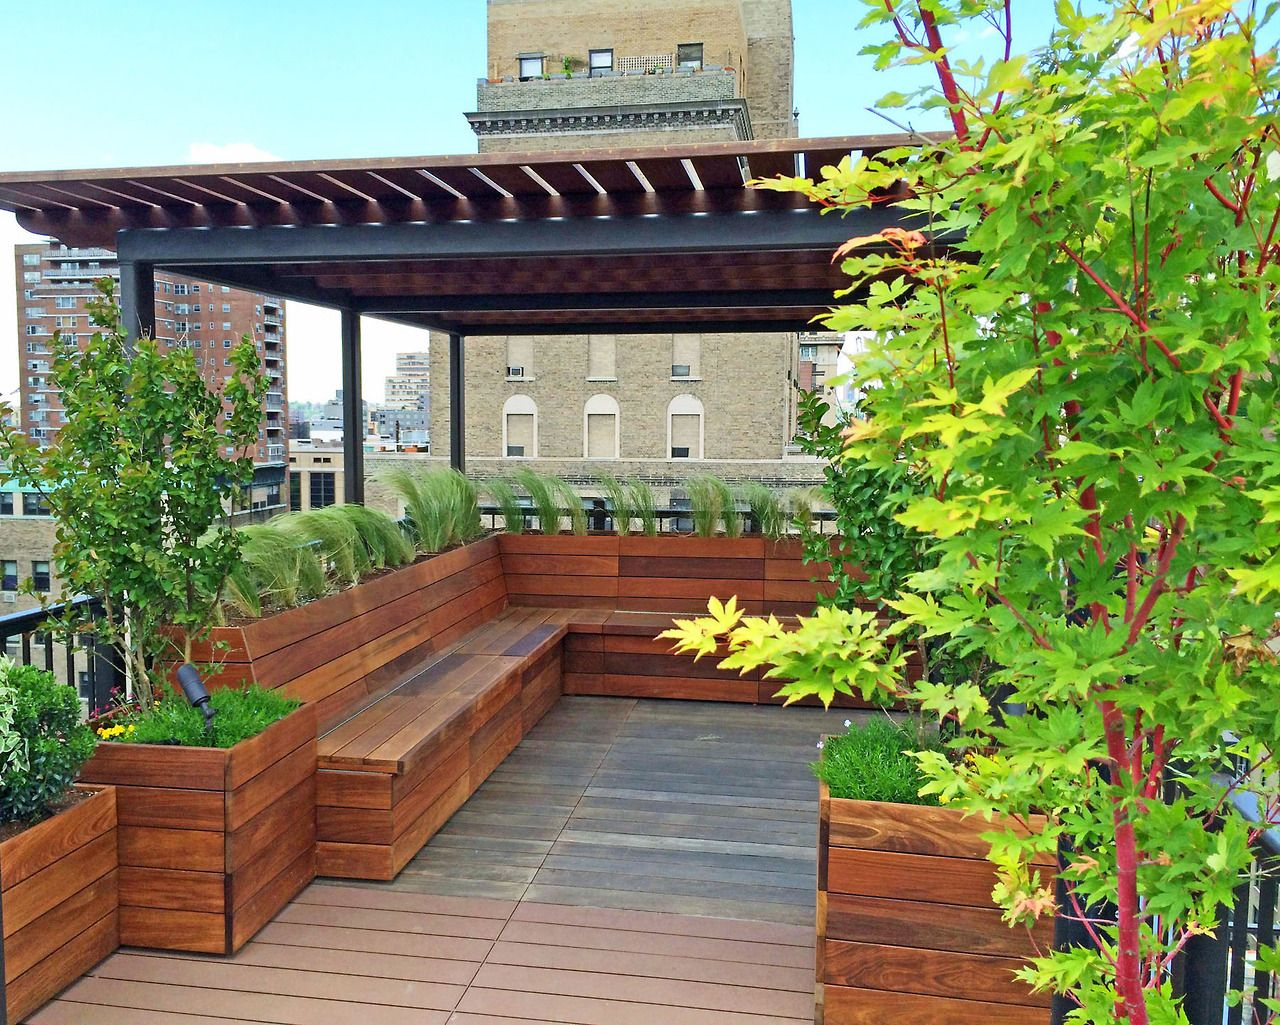 This Custom Roof Deck In Nyc S Flatiron District Features A Built In Pergola Benches With Storage Under The Seat Roof Garden Design Home Garden Design Pergola